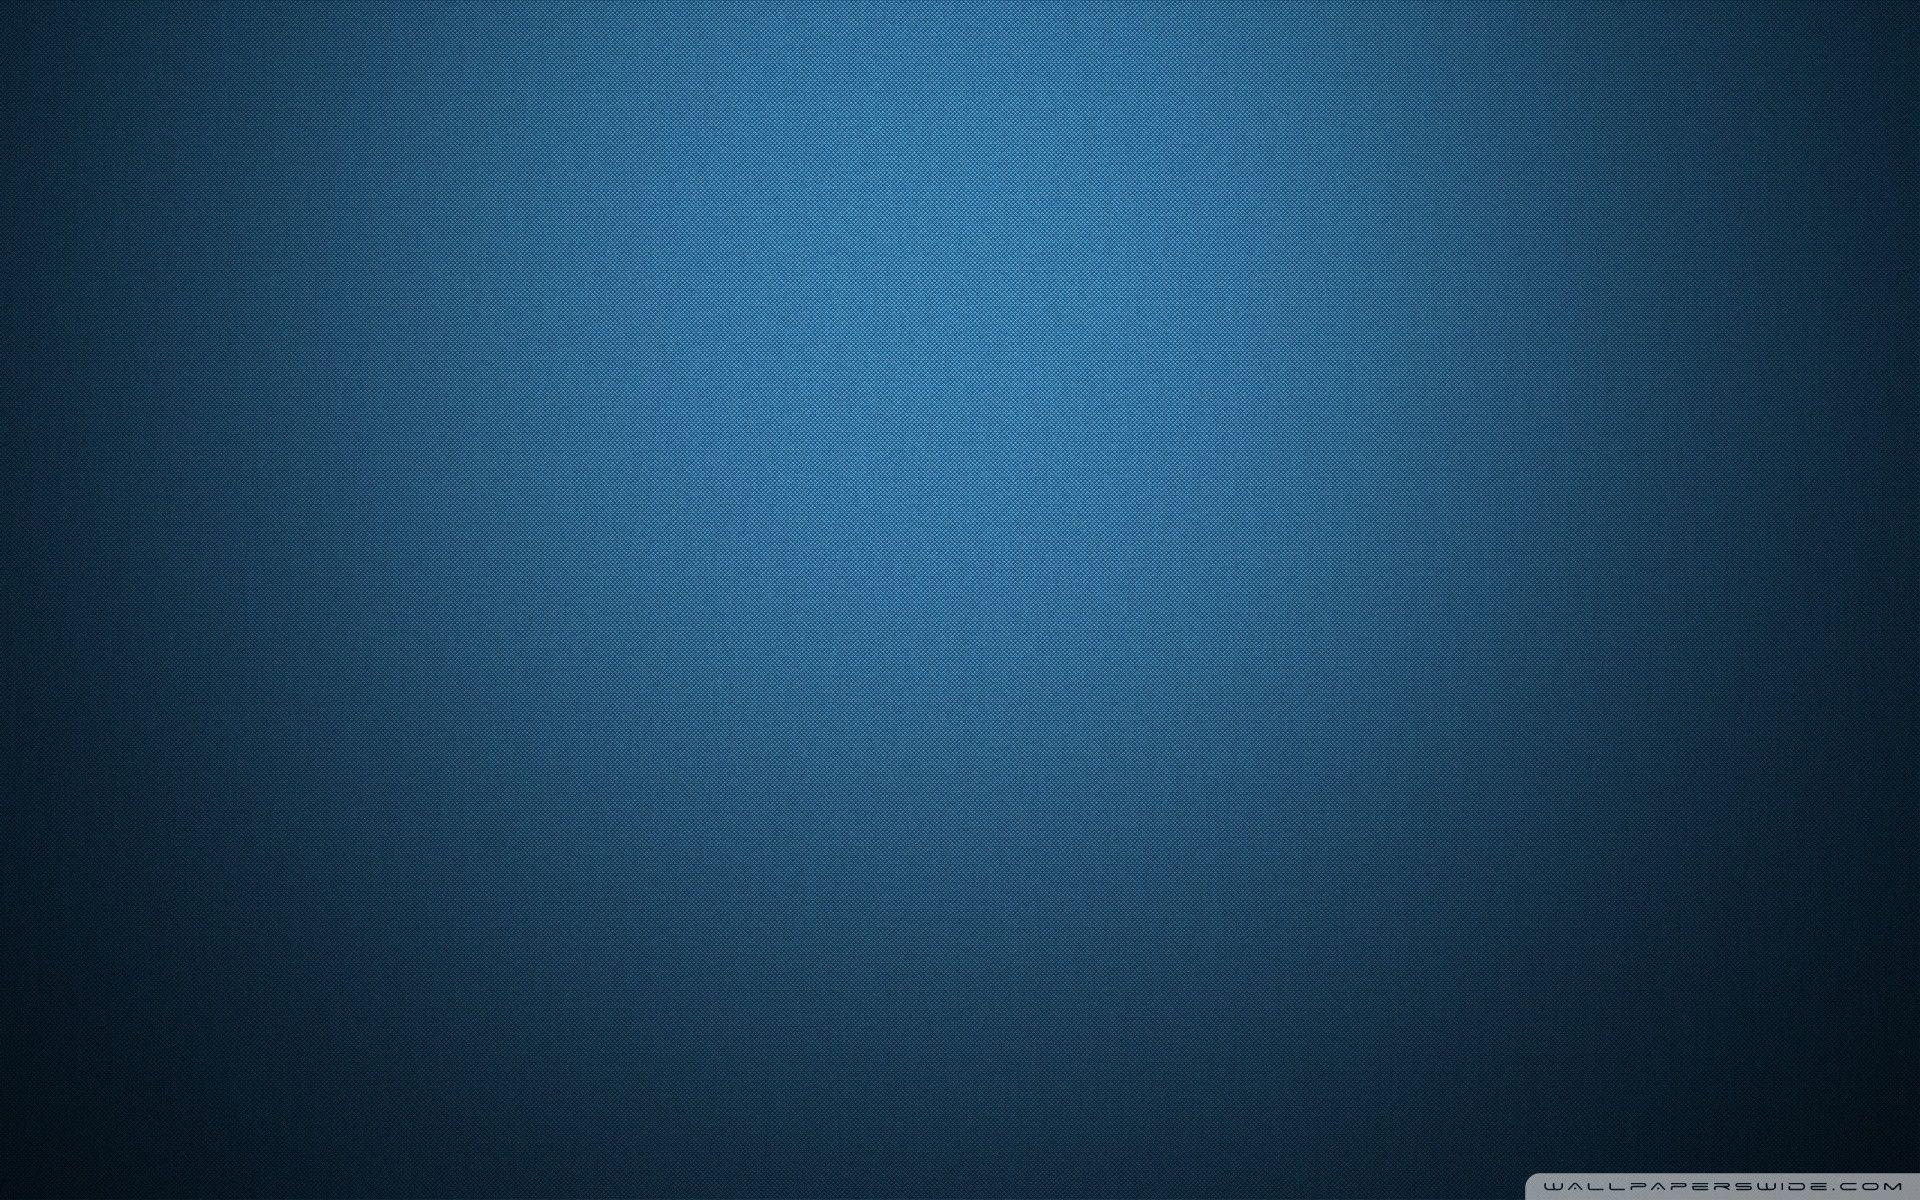 Wallpapers For > Solid Dark Blue Wallpapers